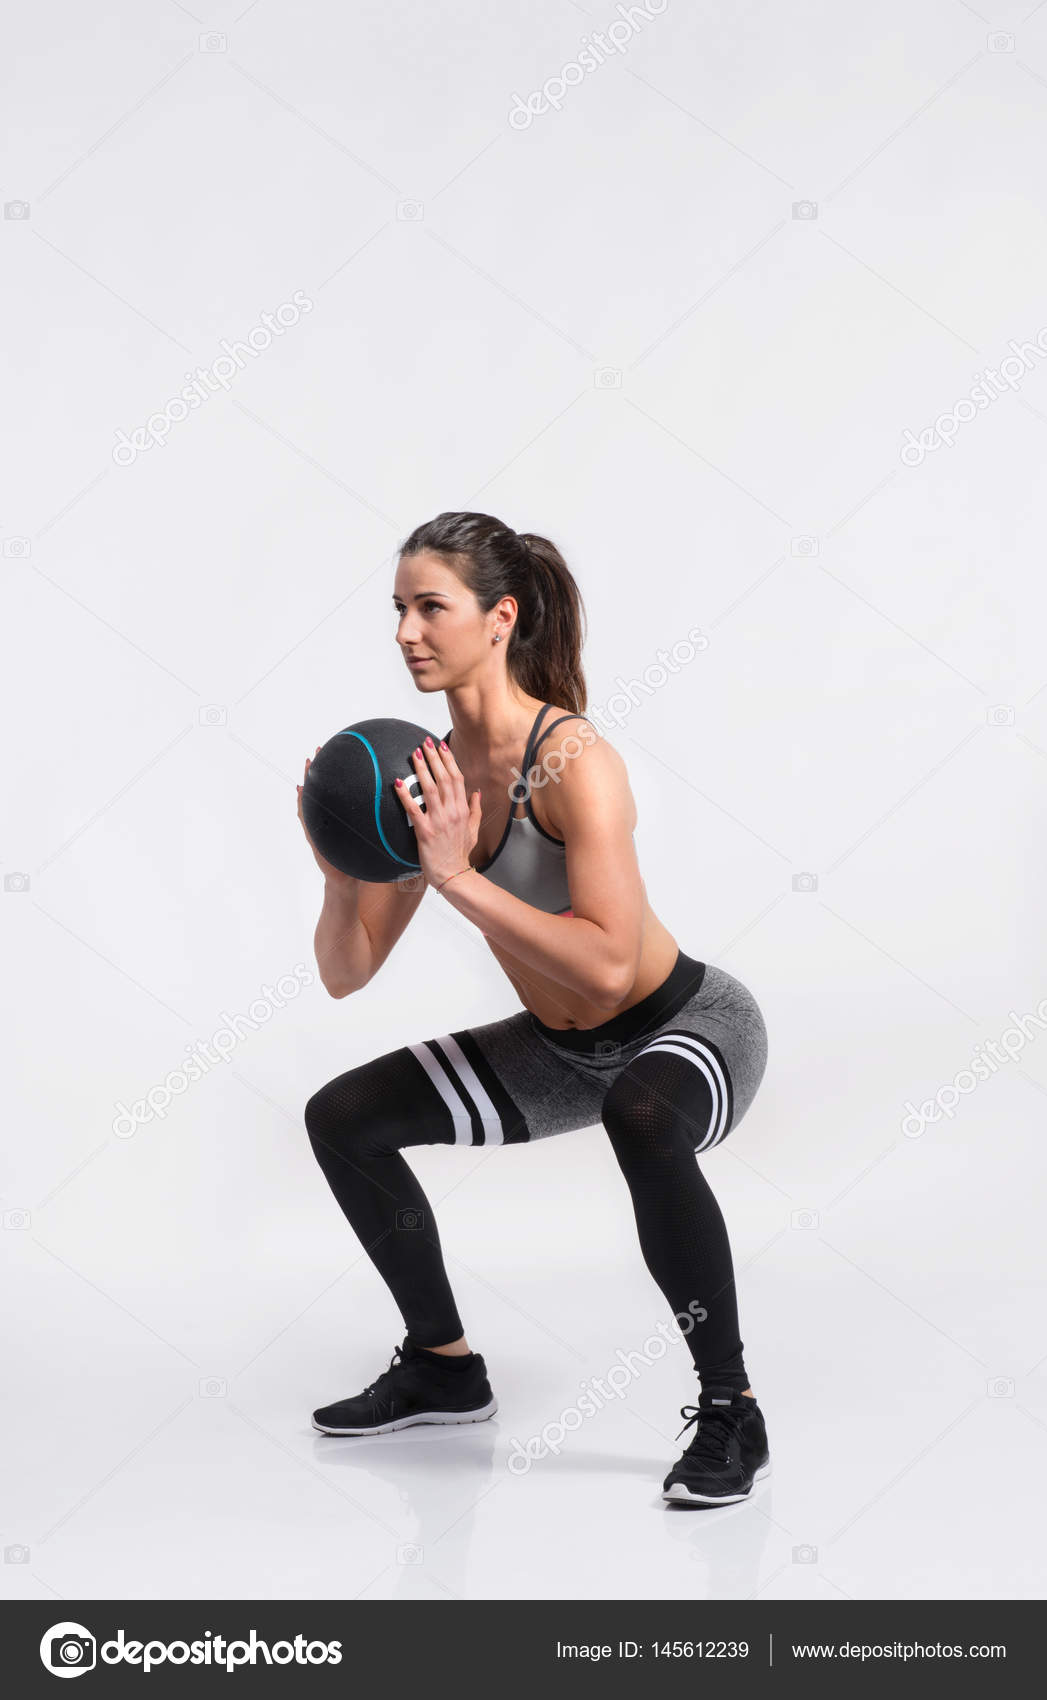 Fitness woman in sports clothing holding medicine ball, studio s